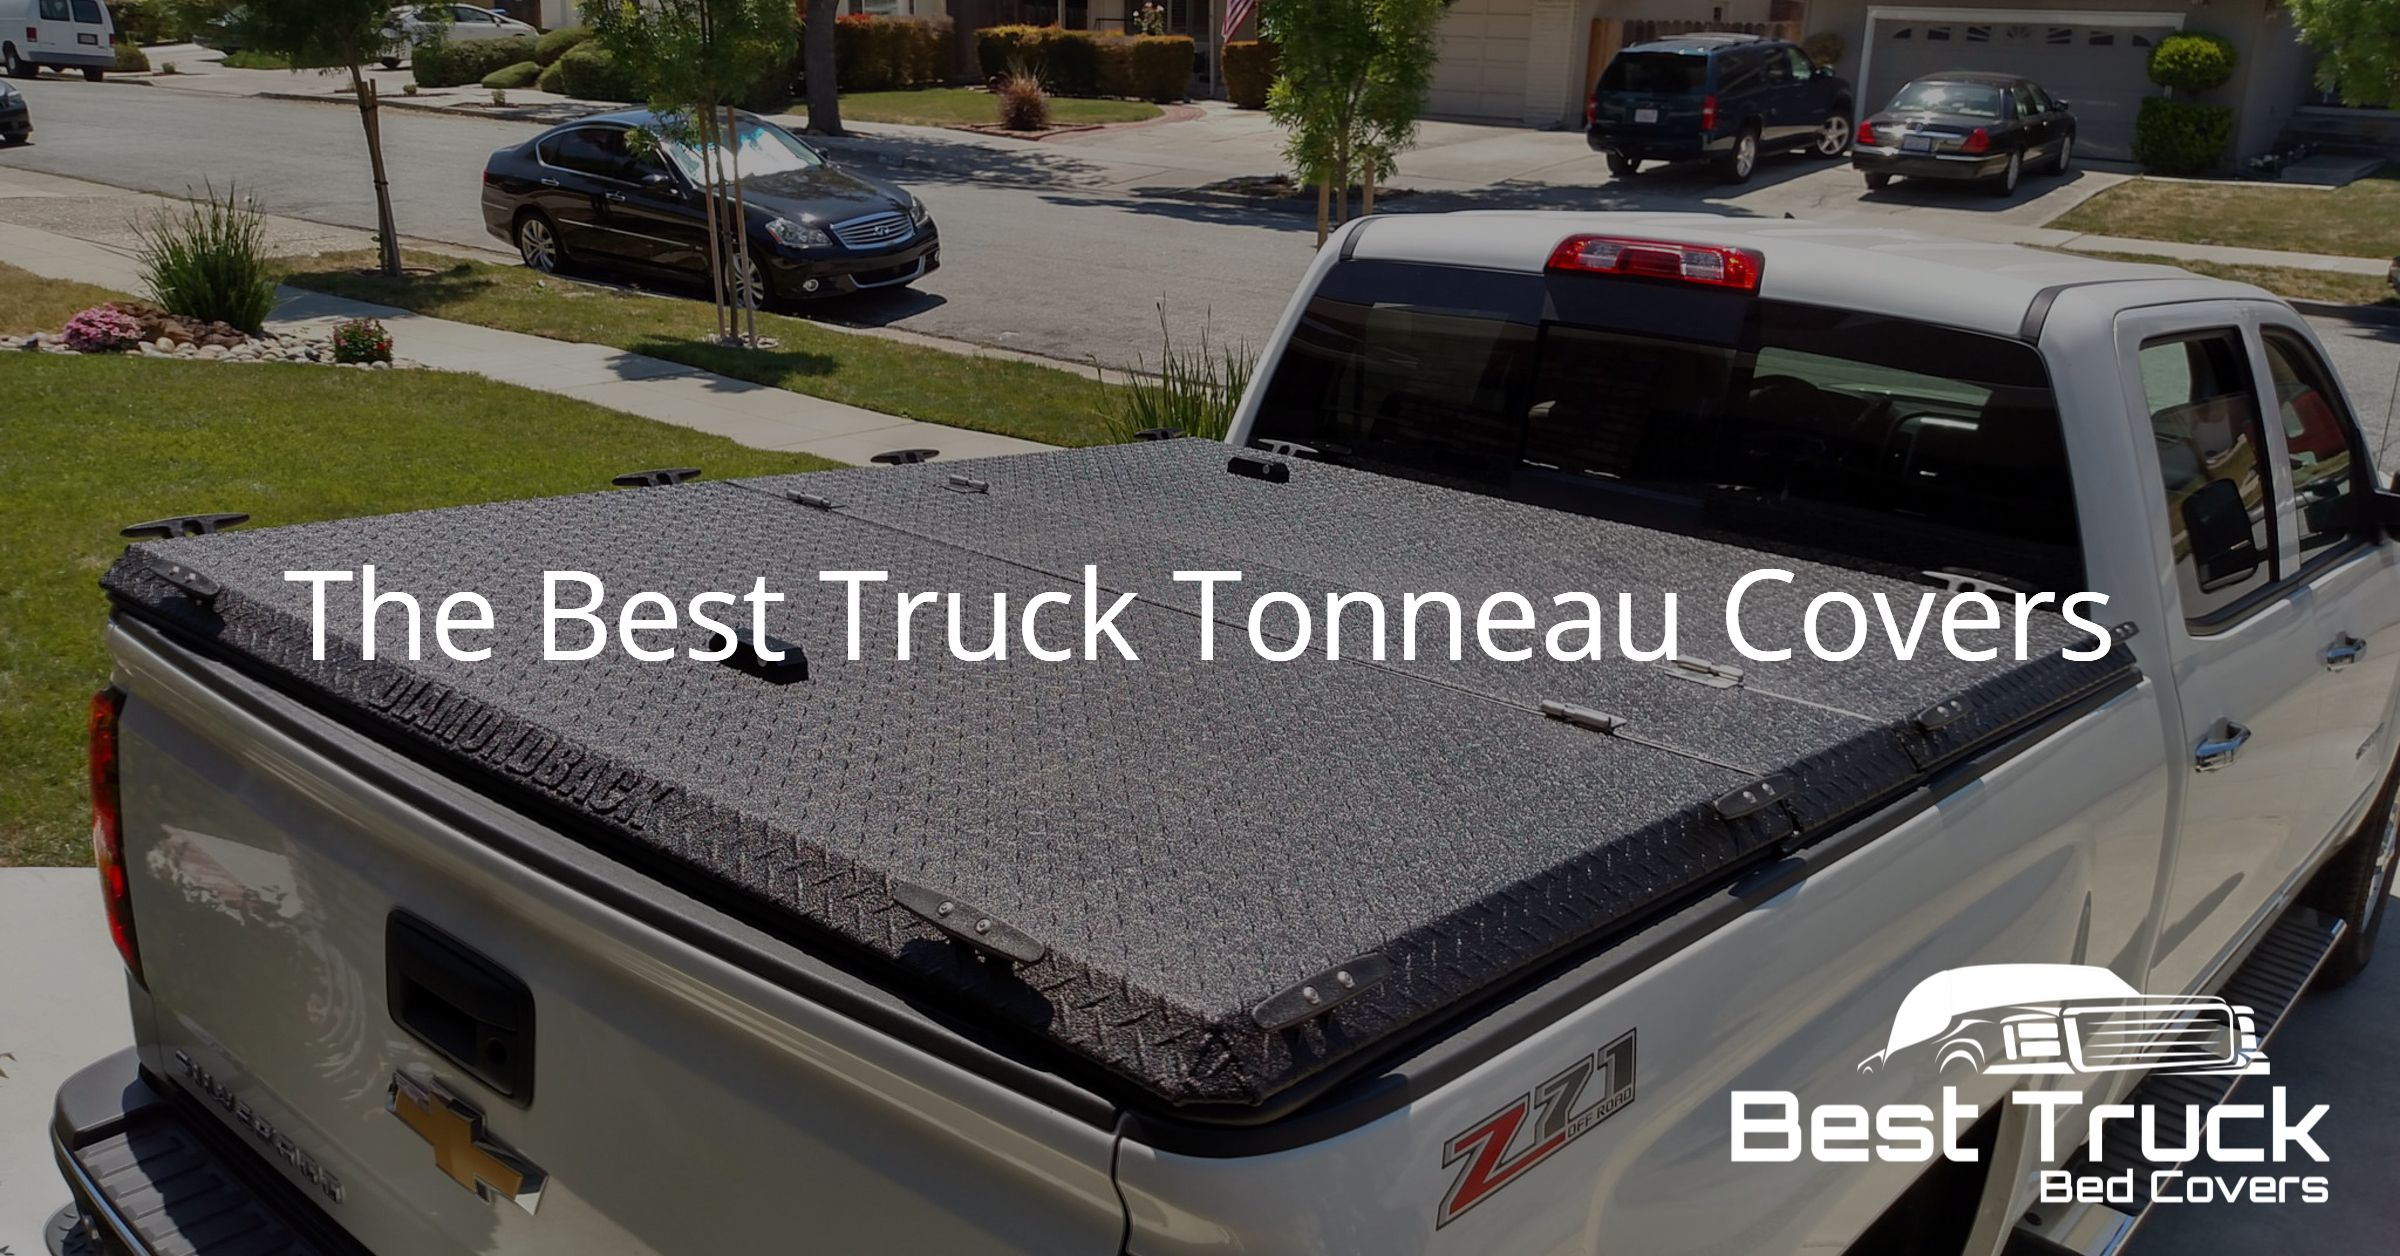 Best 25 retractable tonneau cover ideas only on pinterest retractable truck bed covers litter pizza and tonneau cover parts